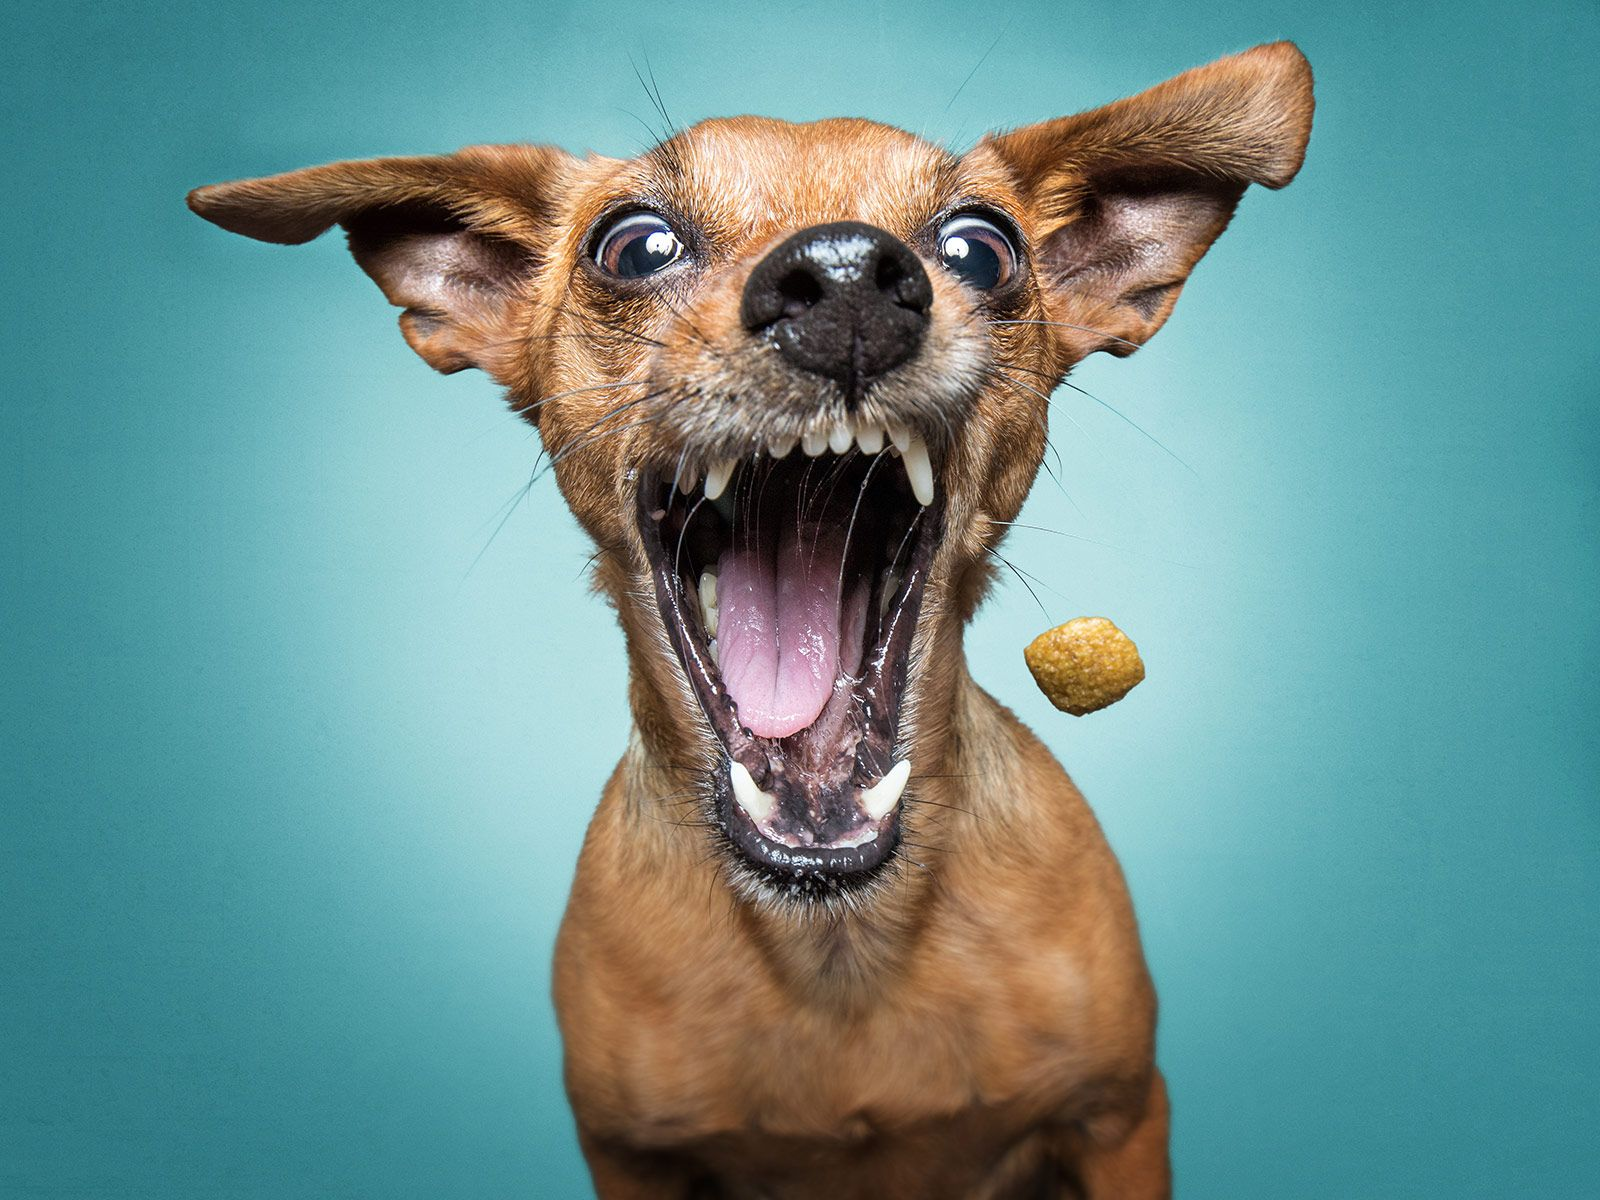 The unbridled joy of dogs catching treats Very cute dogs